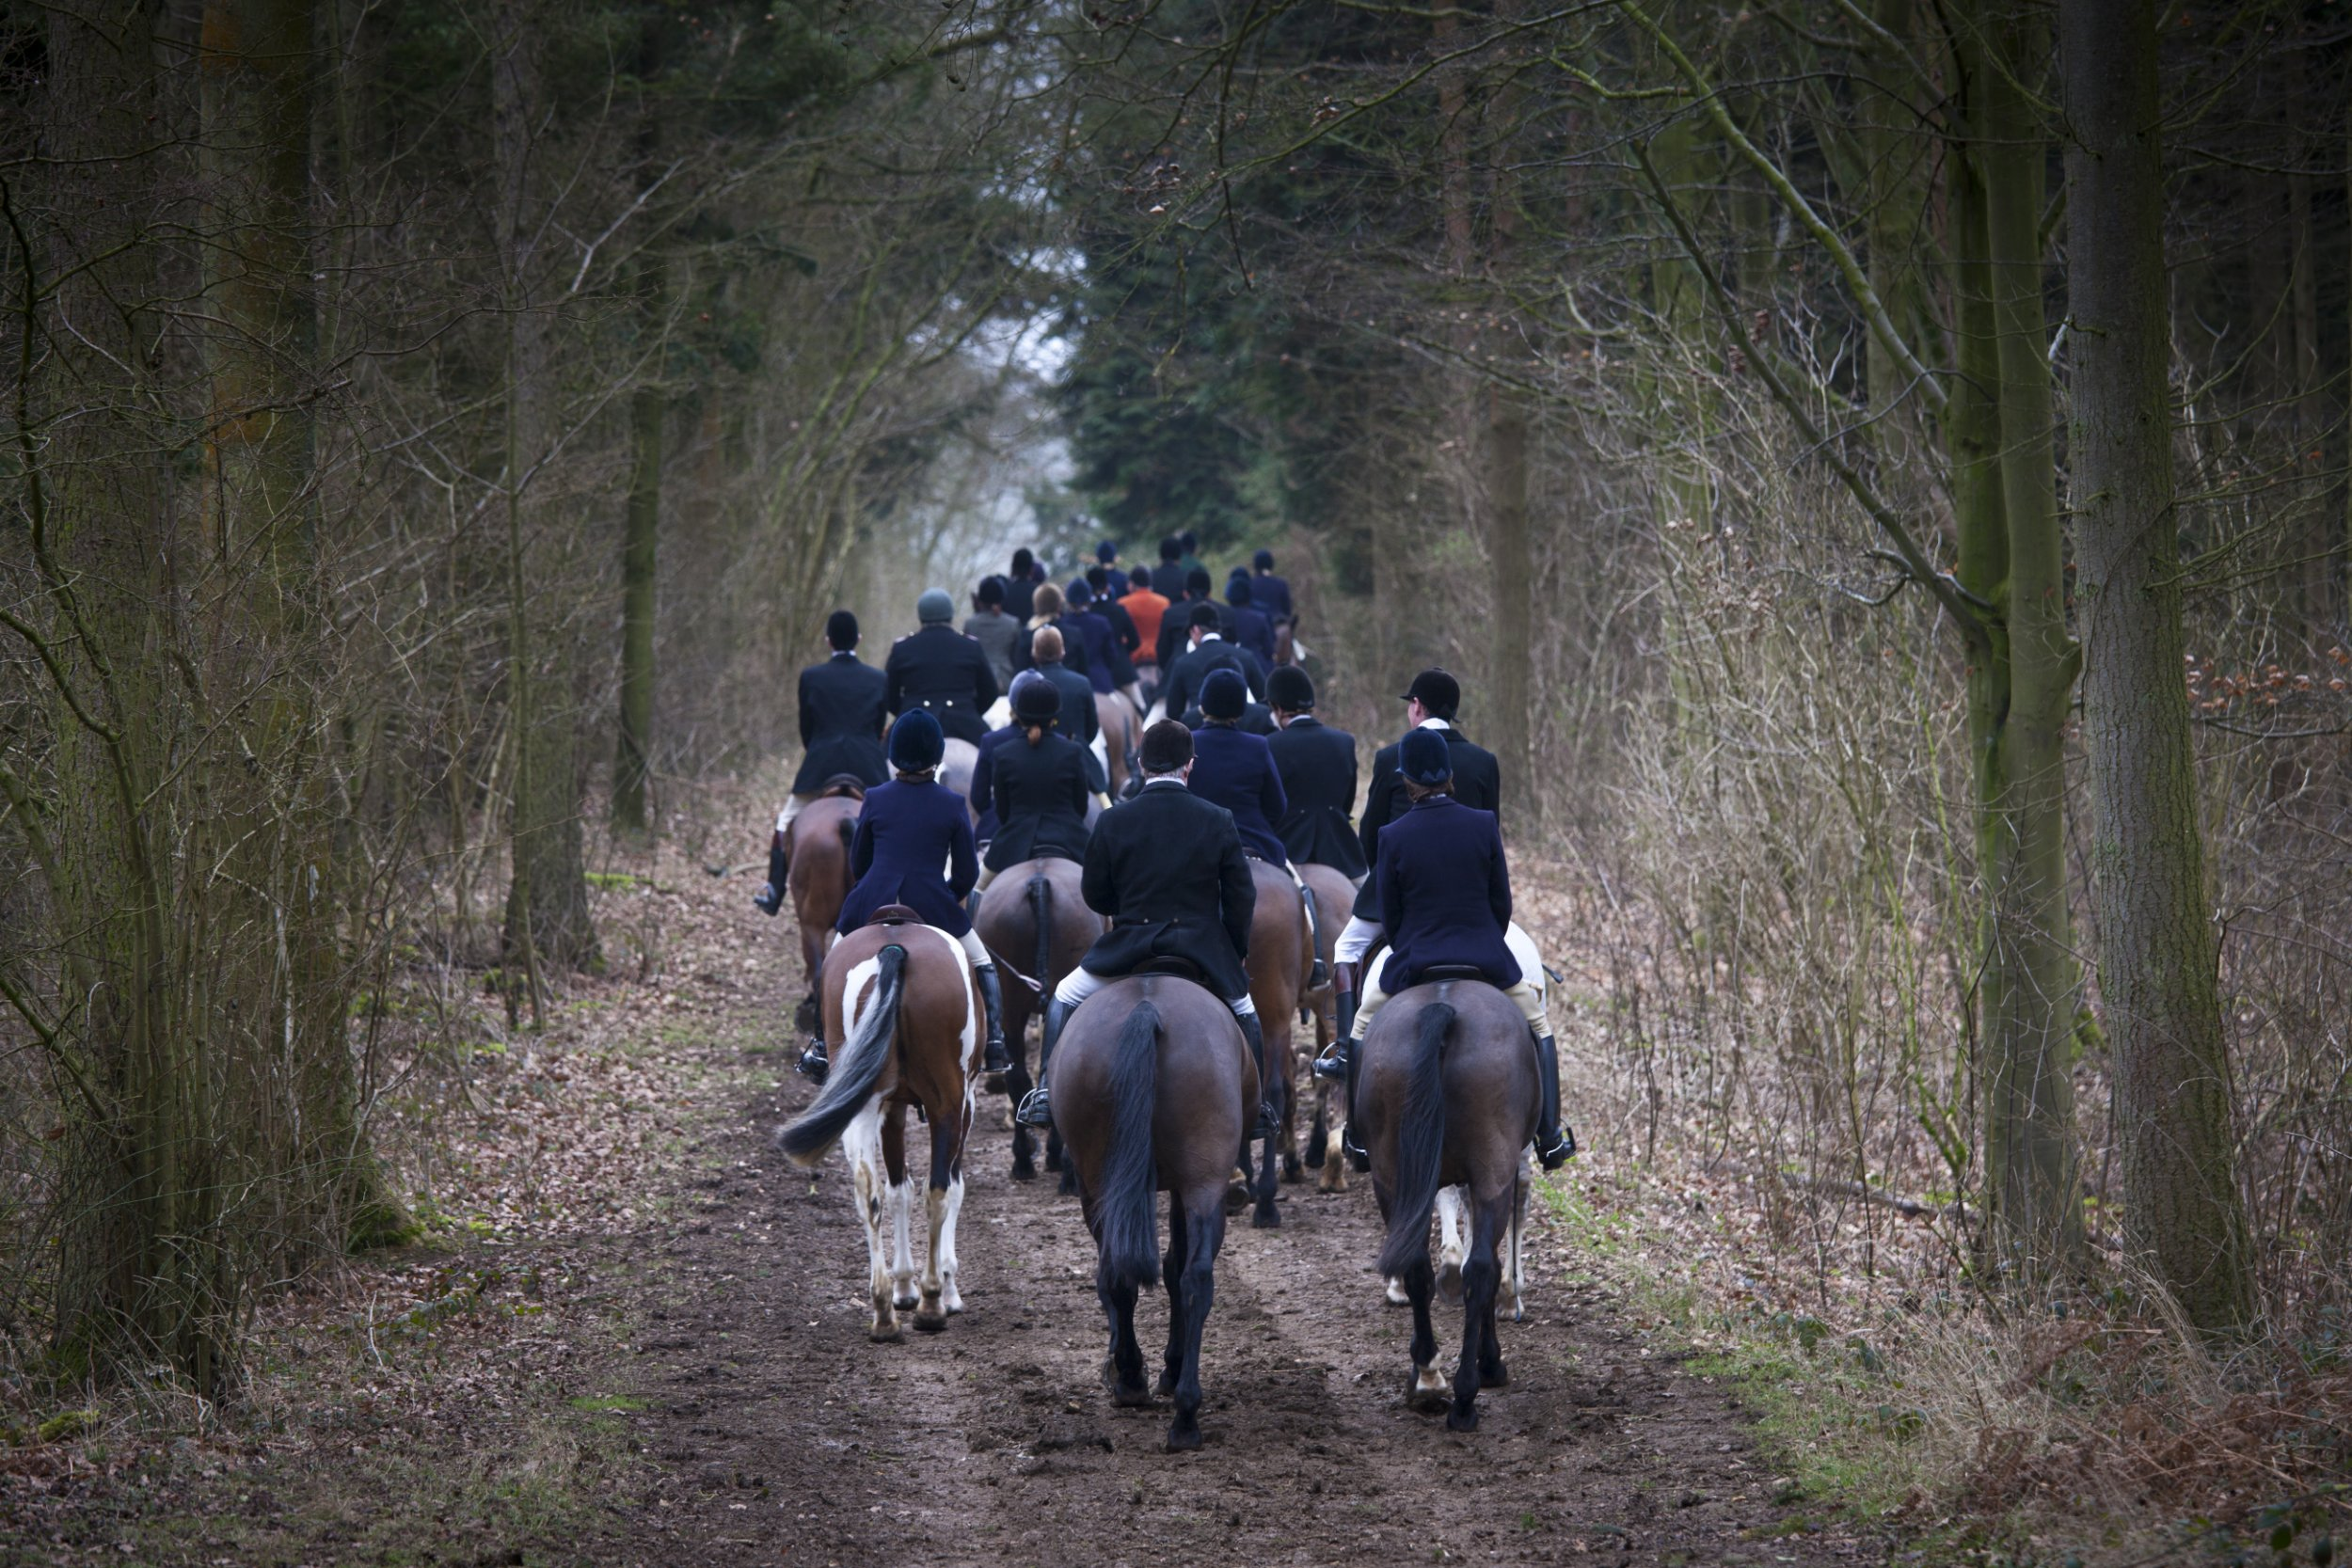 The Heythrop Hunt in The Cotswolds, UK